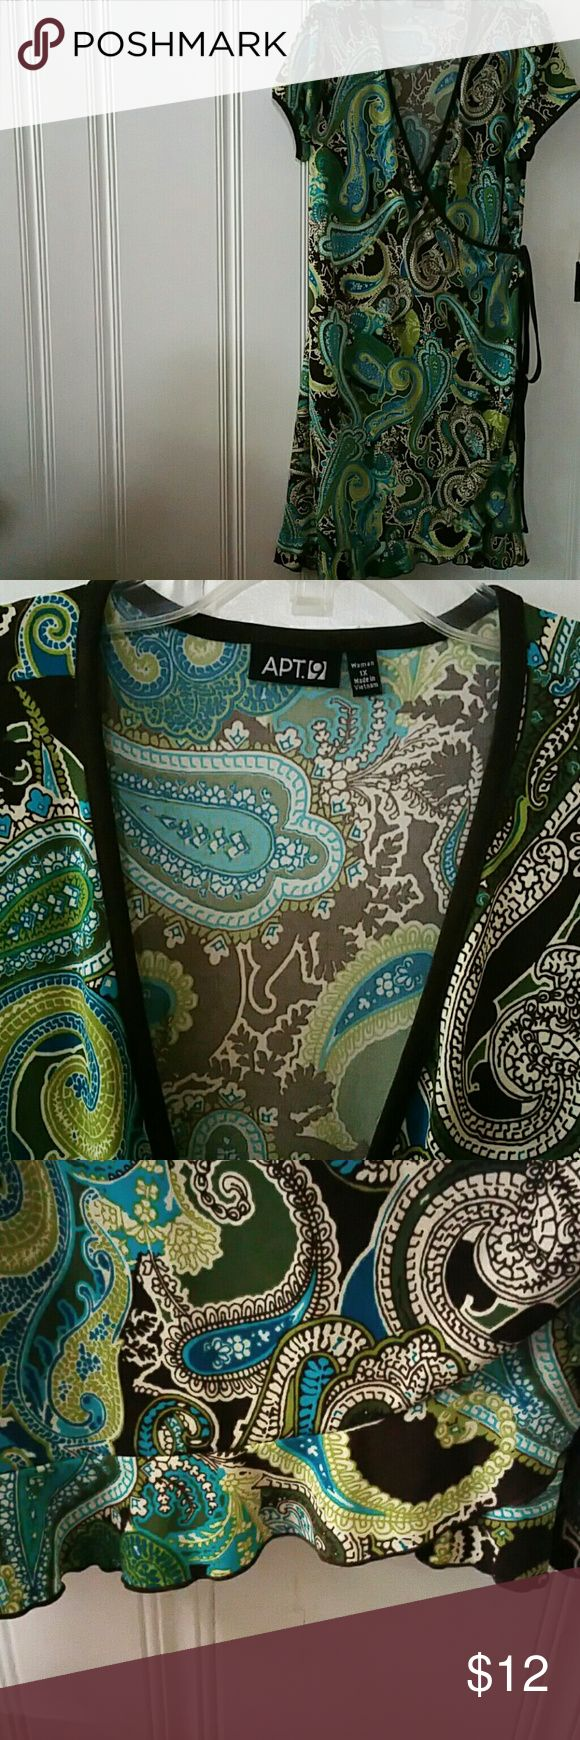 Plus size wrap dress Pretty paisley wrap dress from Apt 9. It has colors of brown yellow and green and is sized 1X. It is made from m polyester Apt. 9 Dresses Midi